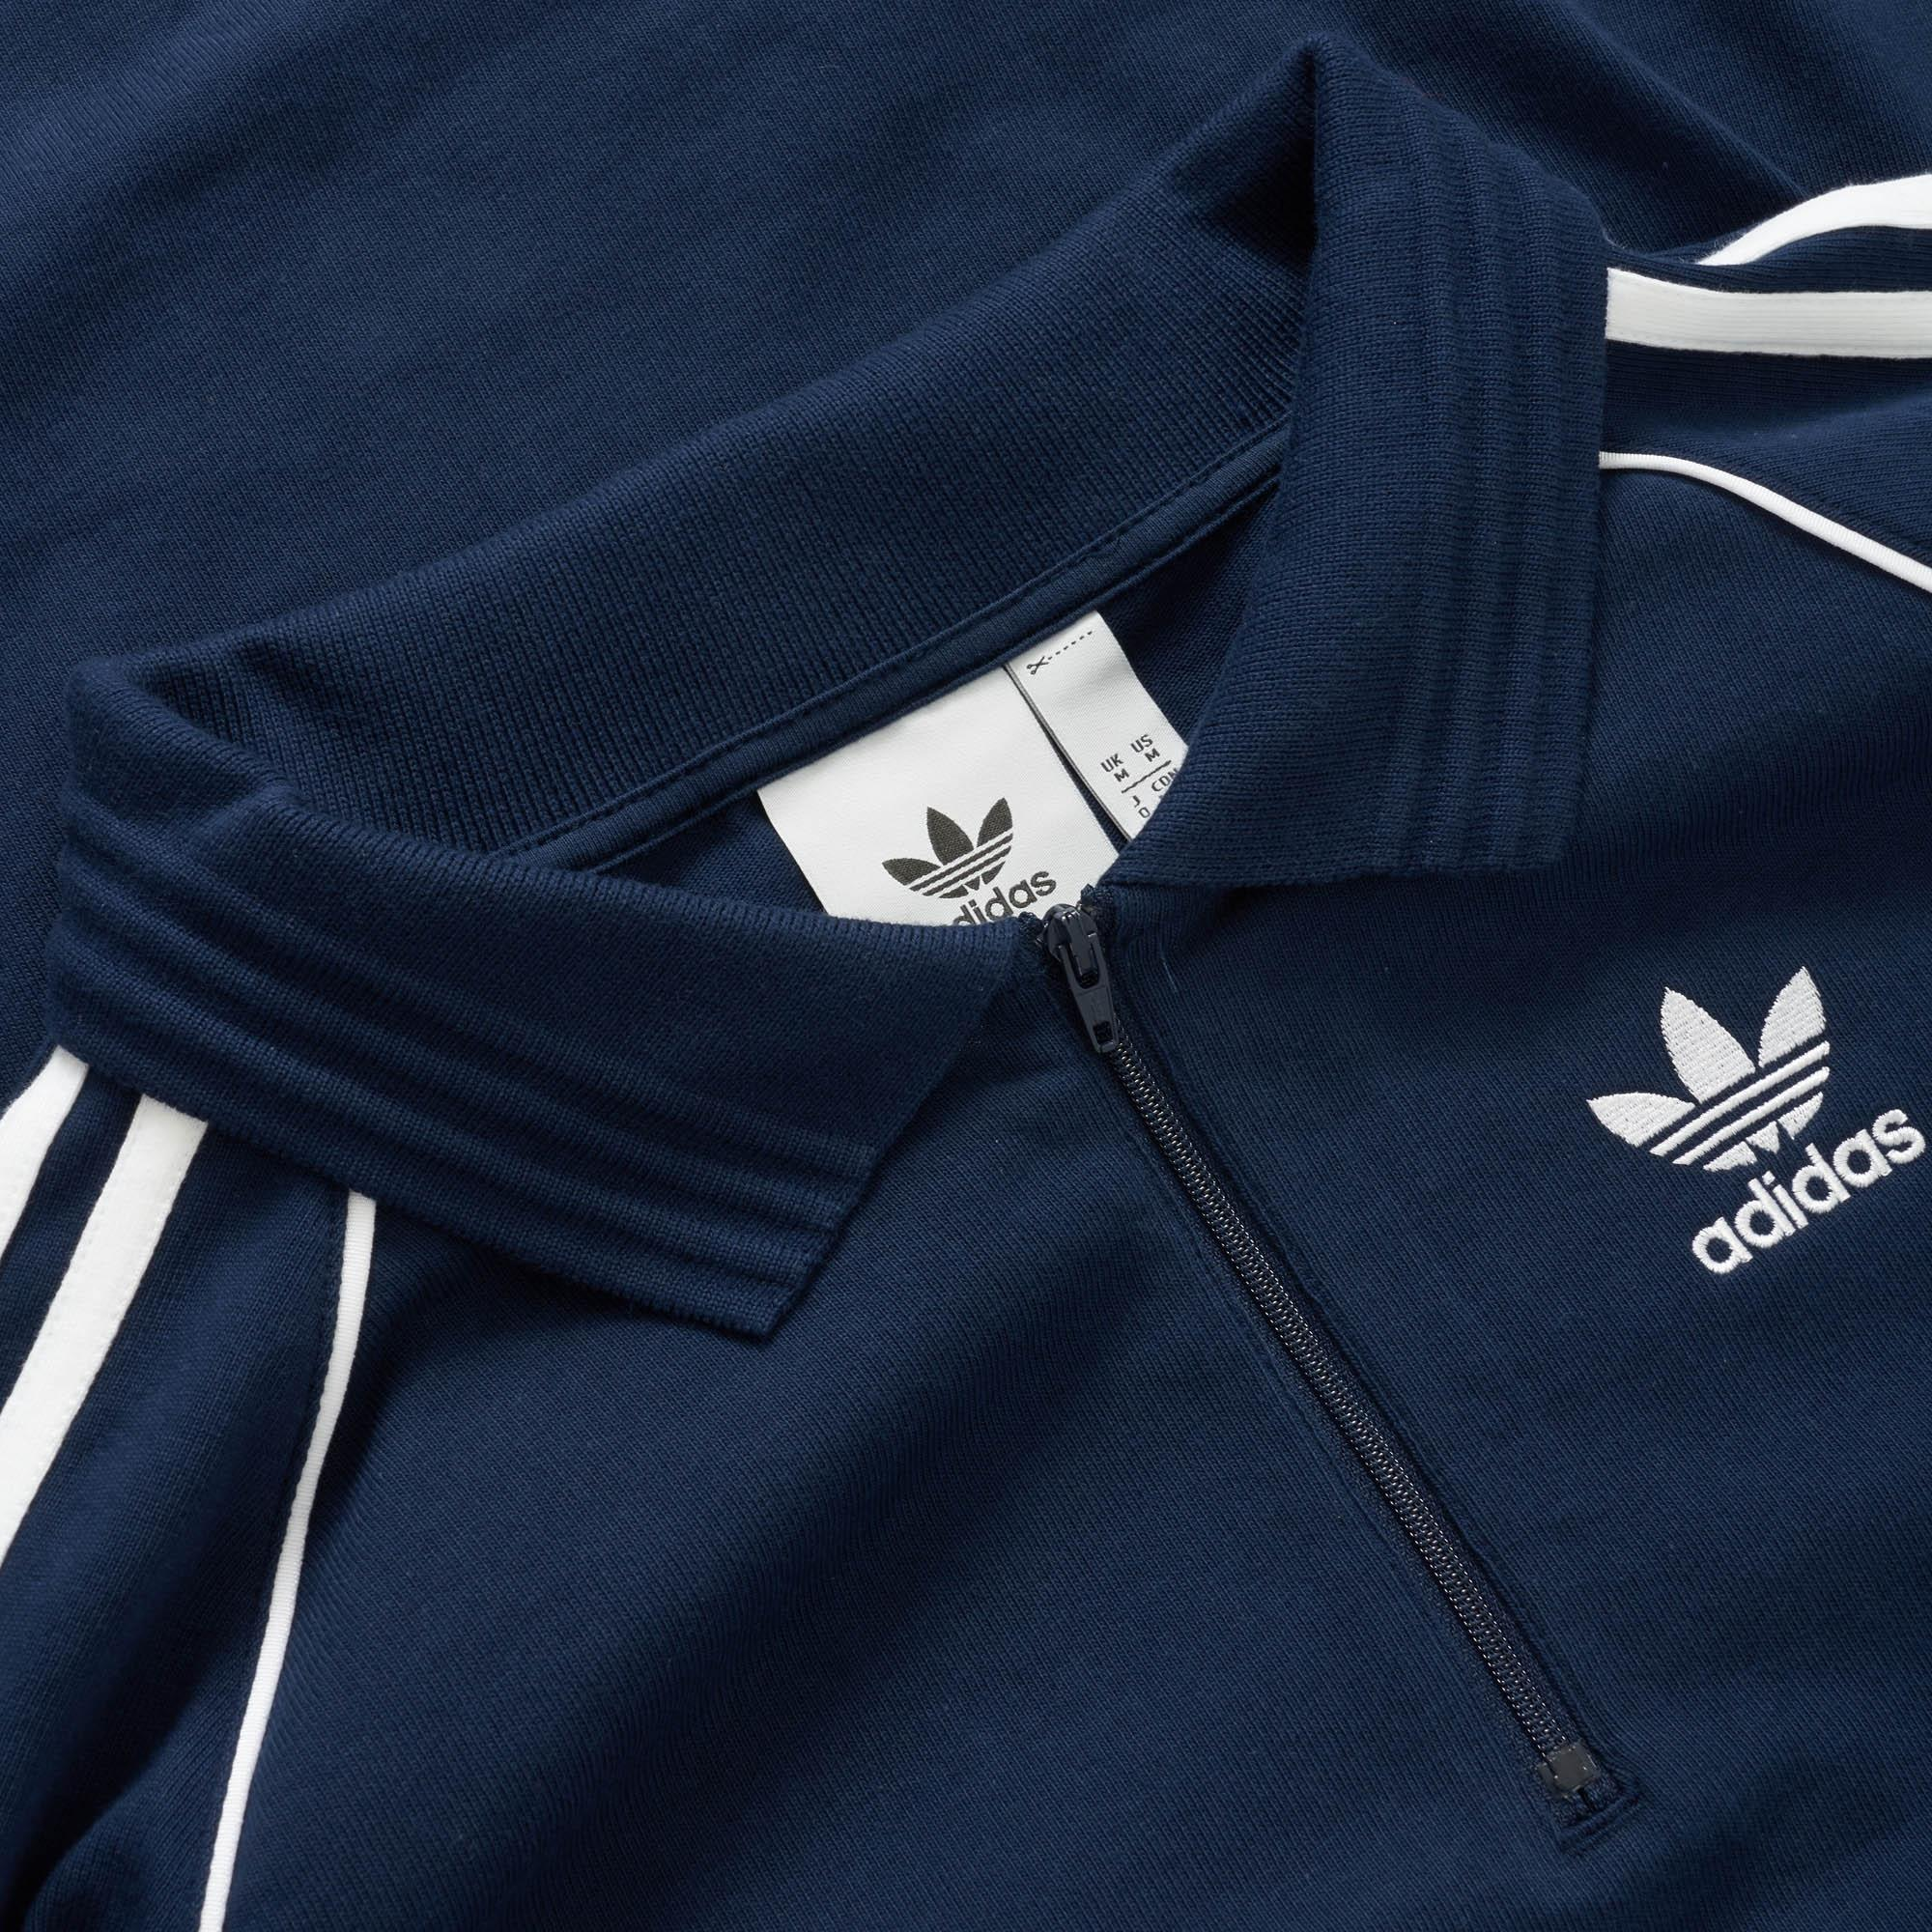 03aec032996 adidas Originals Authentic Rugby Jersey in Blue for Men - Lyst